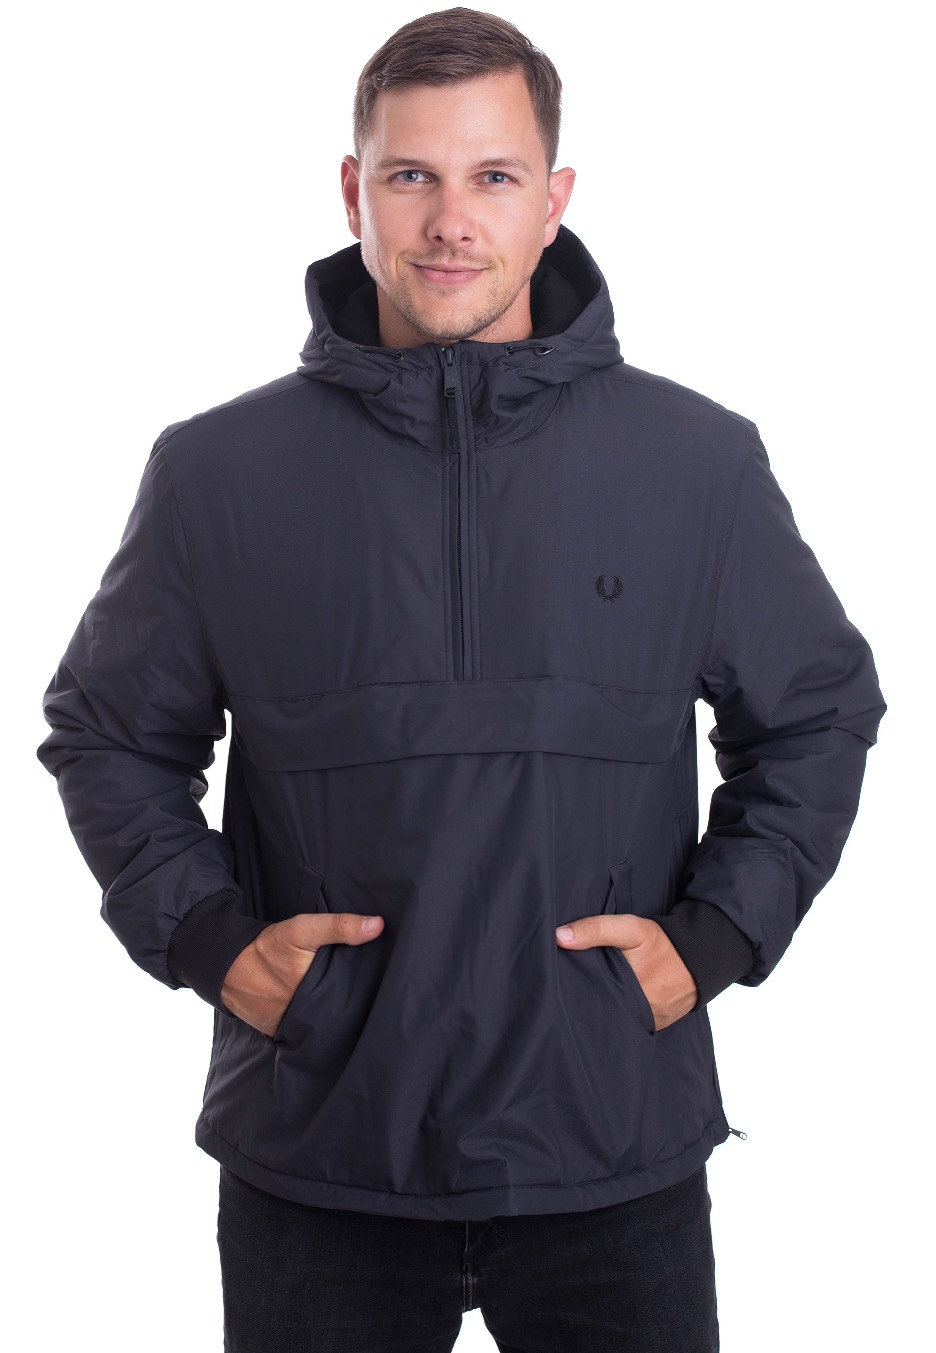 83c69037ff0 Fred Perry - Half Zip Hooded Brentham Graphite - Jacket - Streetwear Shop -  Impericon.com US